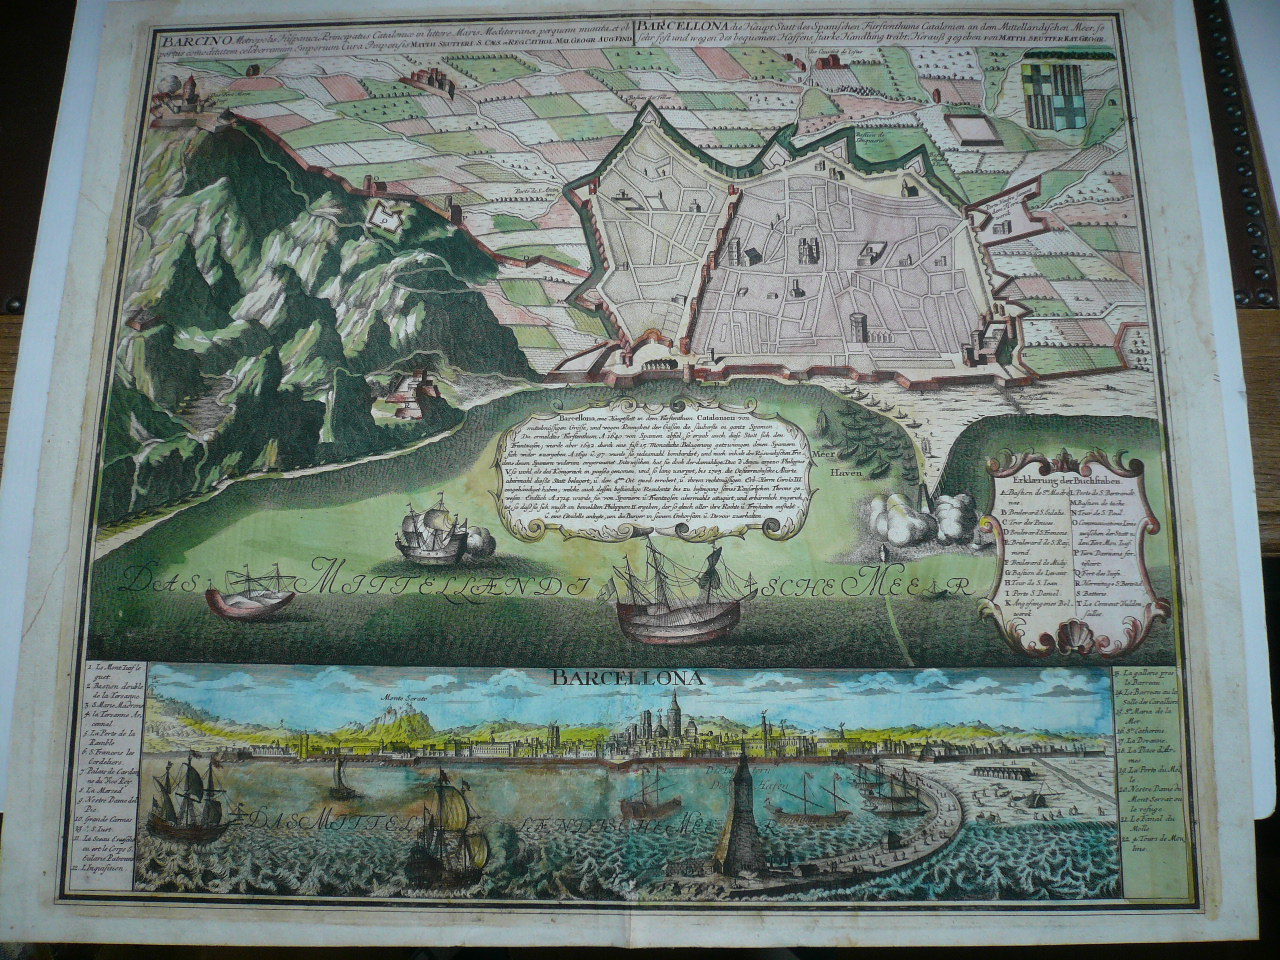 Barcelona/Barcino, anno 1730, Seutter M., plan+panorama Copperen